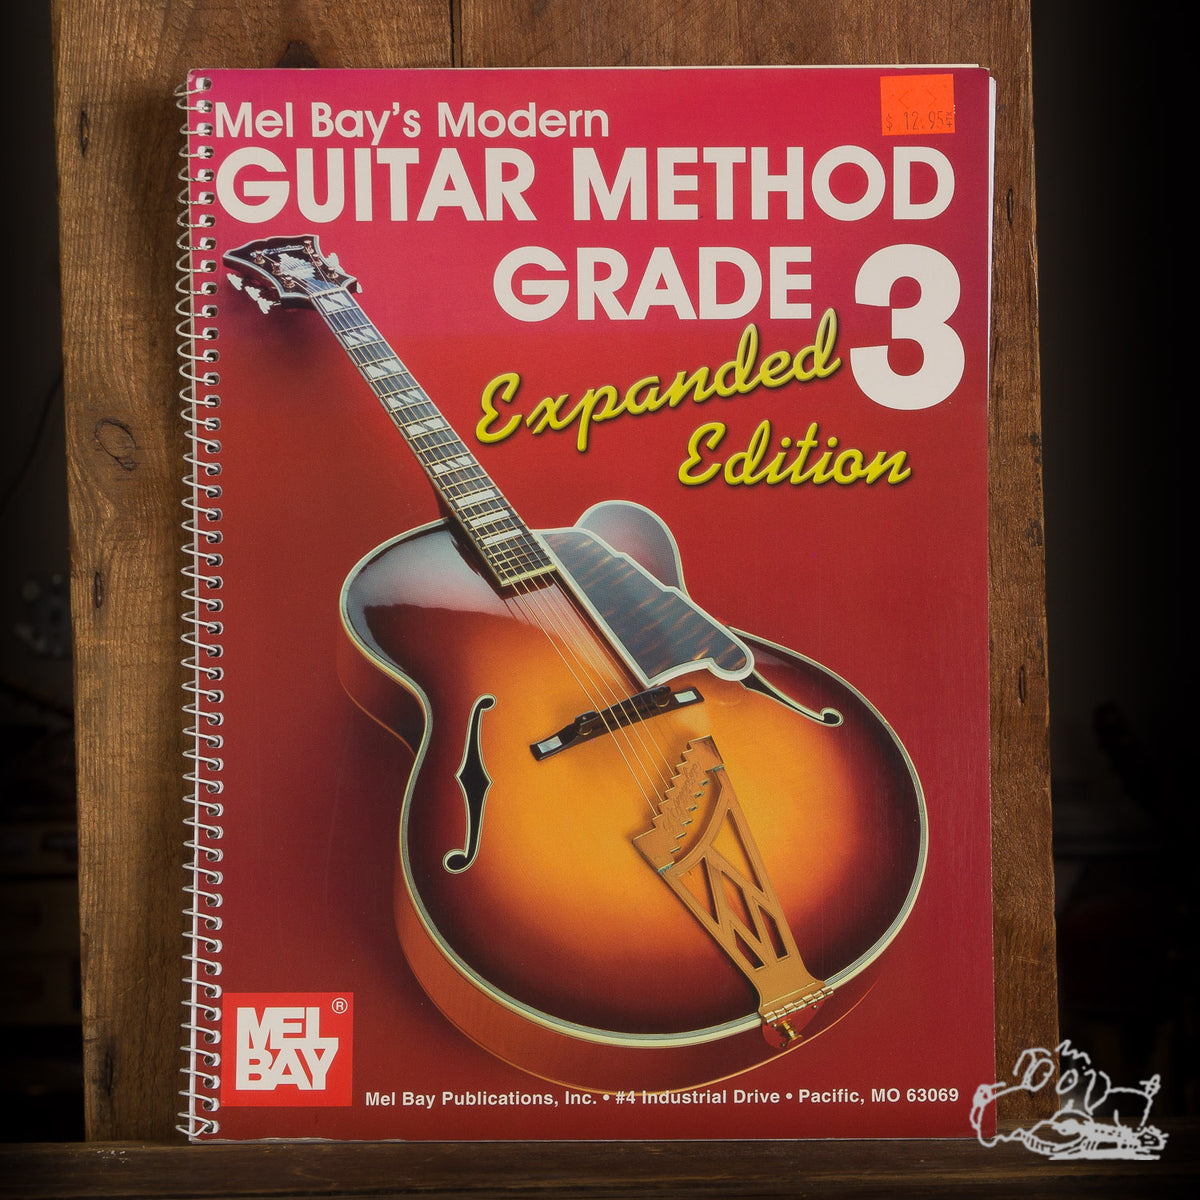 Mel Bay's Modern Guitar Method Grade 3: Expanded Edition